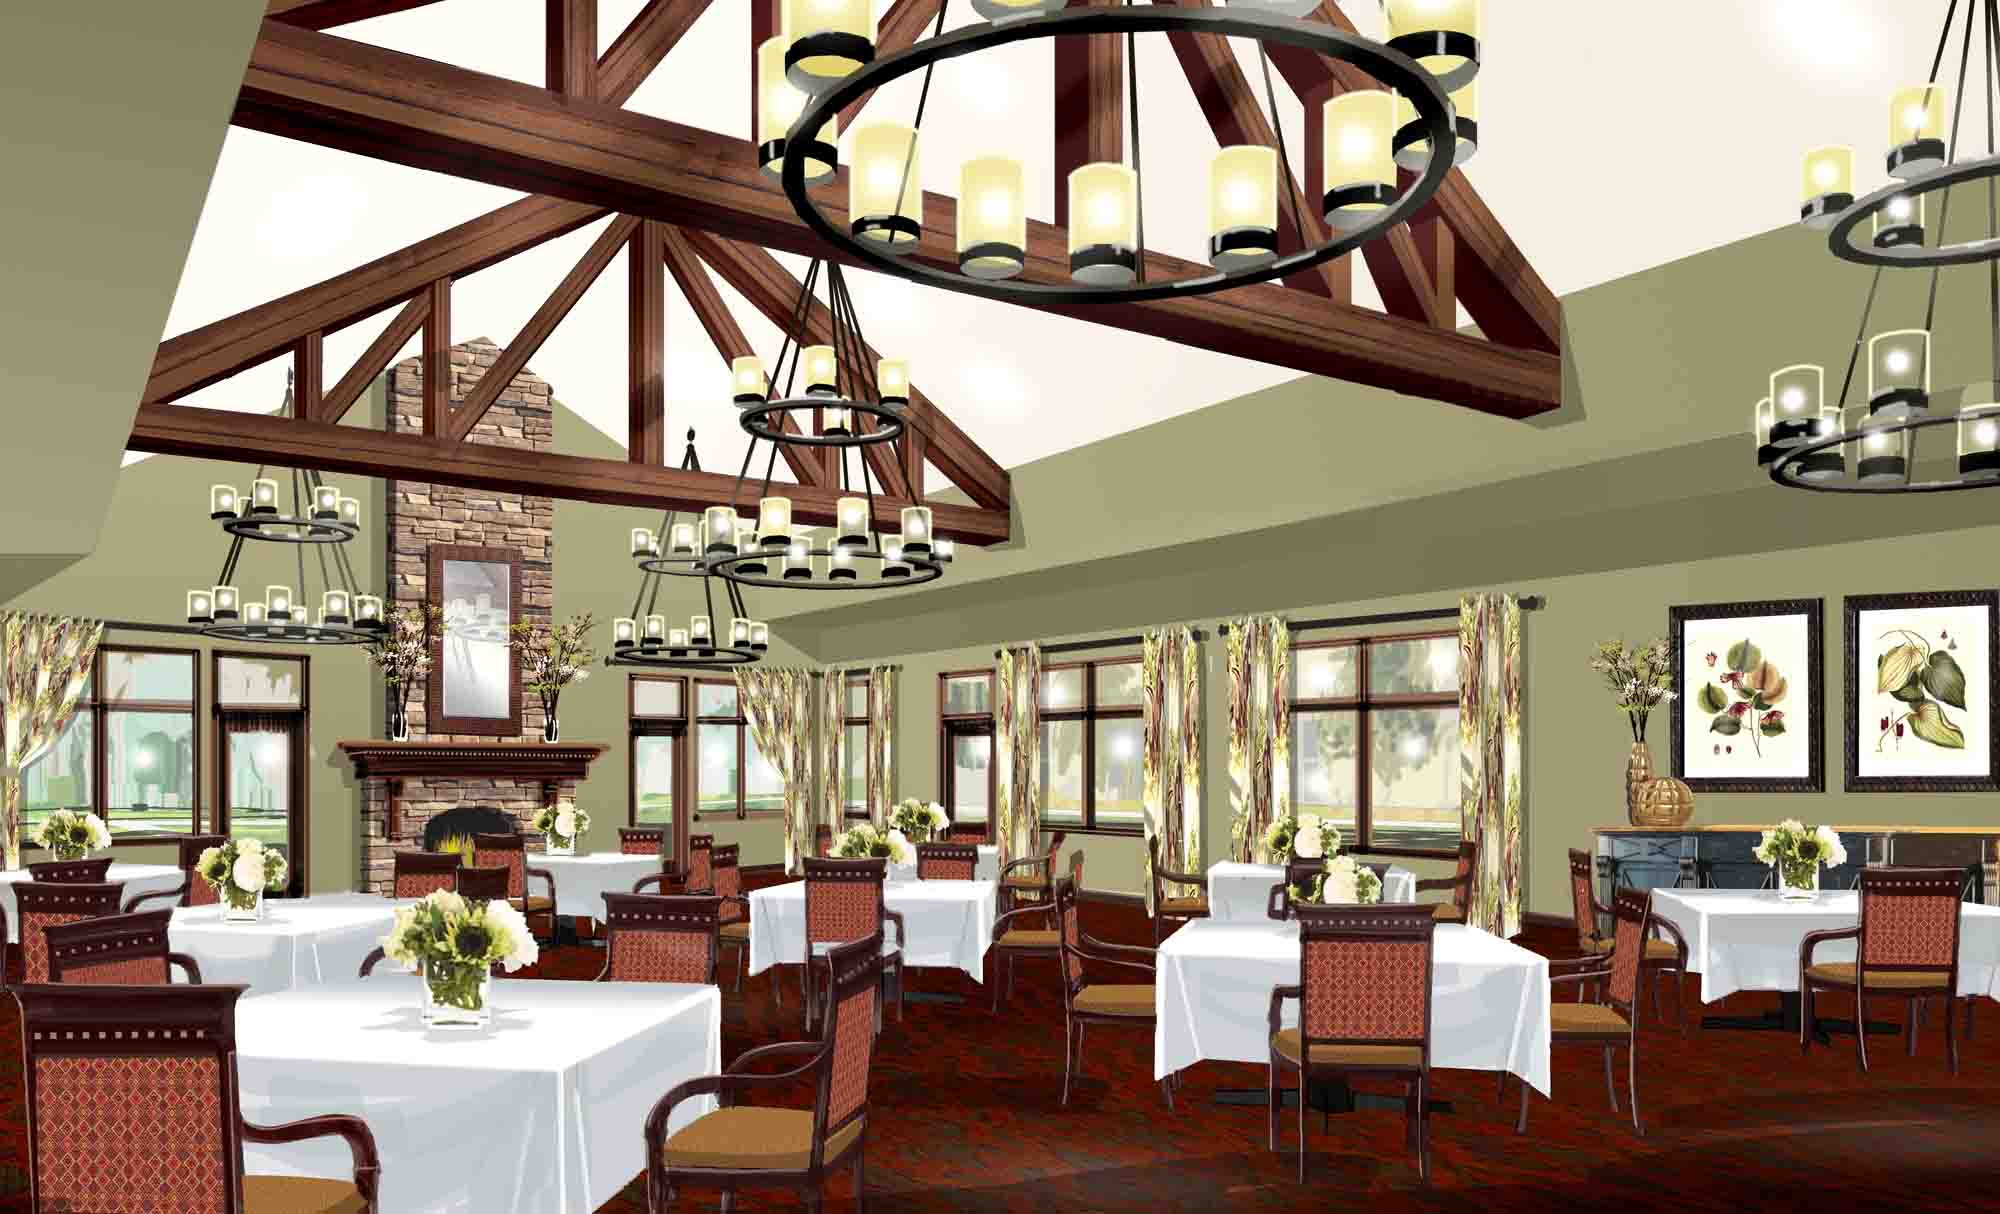 Care Facility Dining Concept, Spellman Brady & Co.